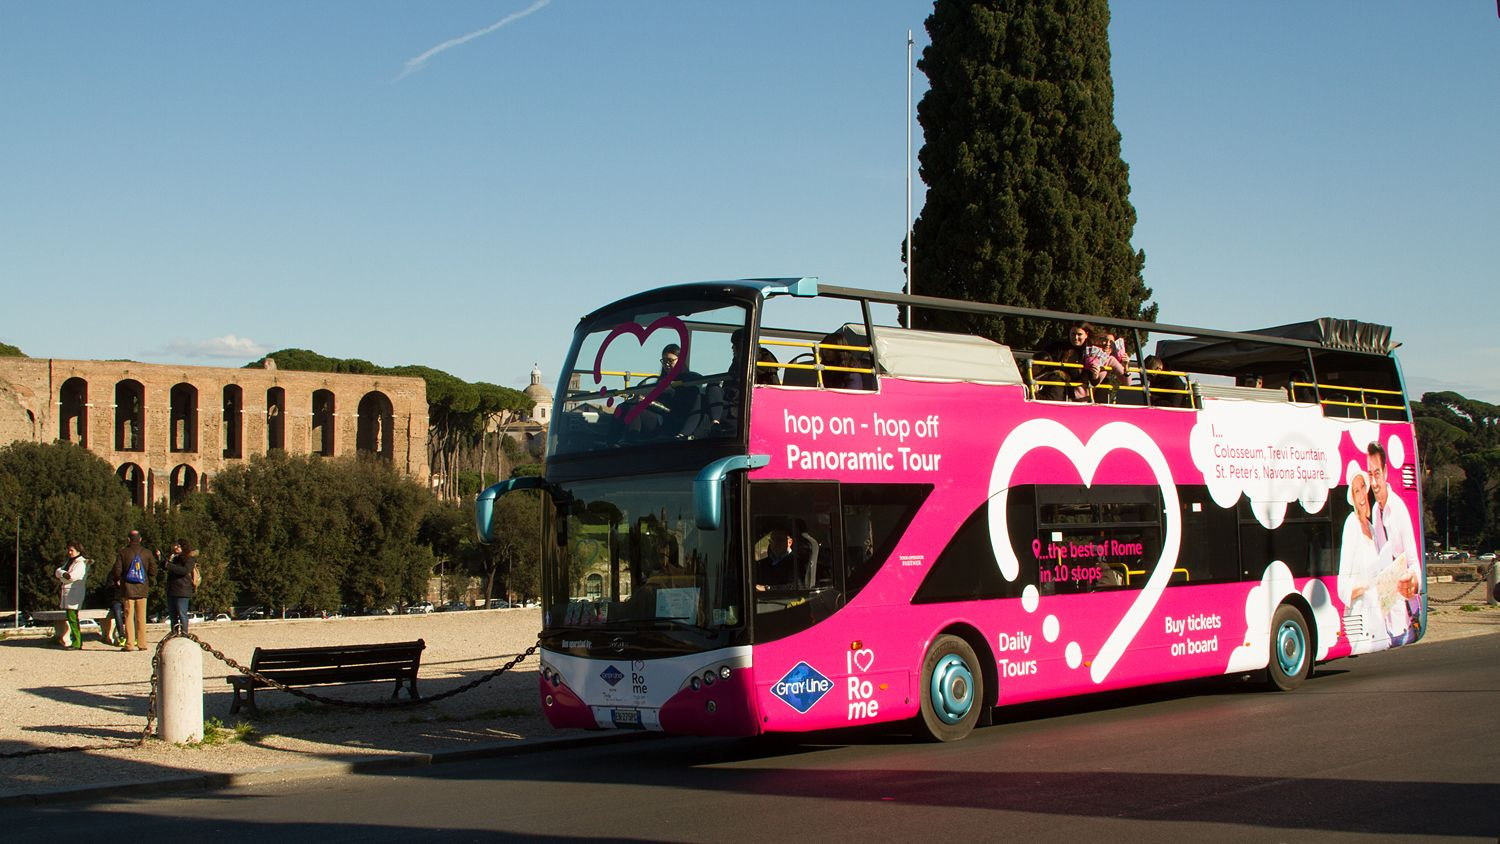 Photo of the tourbus parked outside an ancient roman forum.